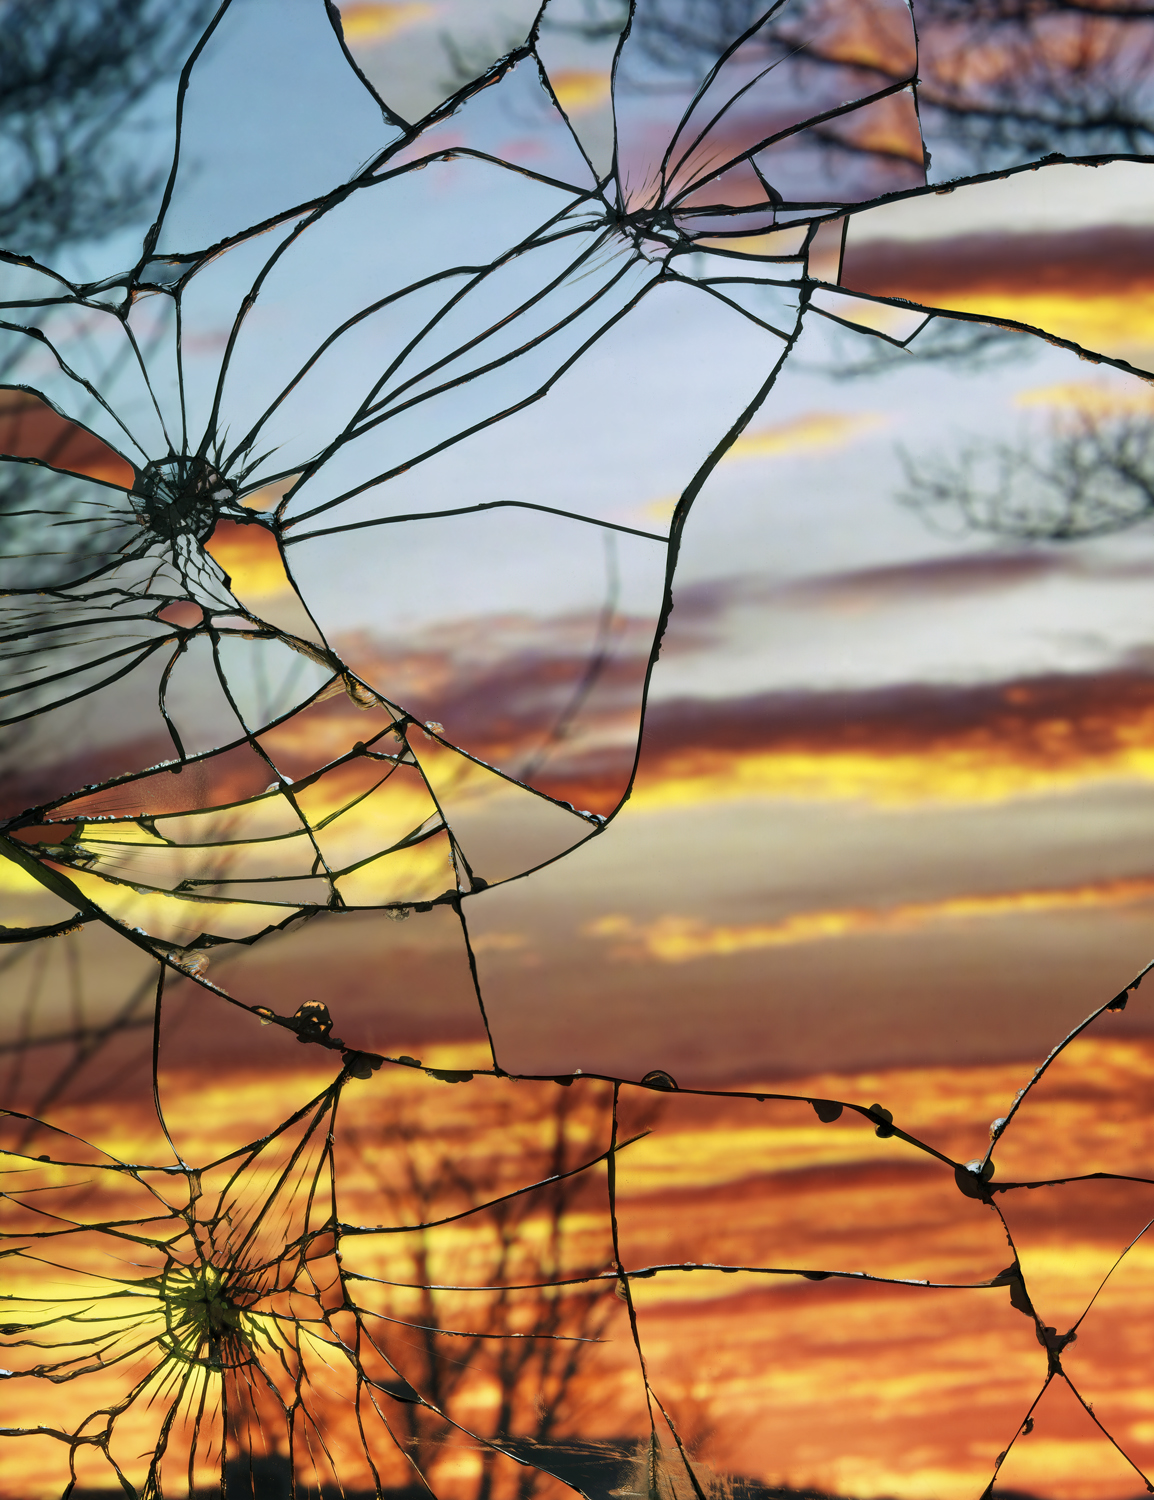 Broken Mirror/Evening Sky (Anscochrome)